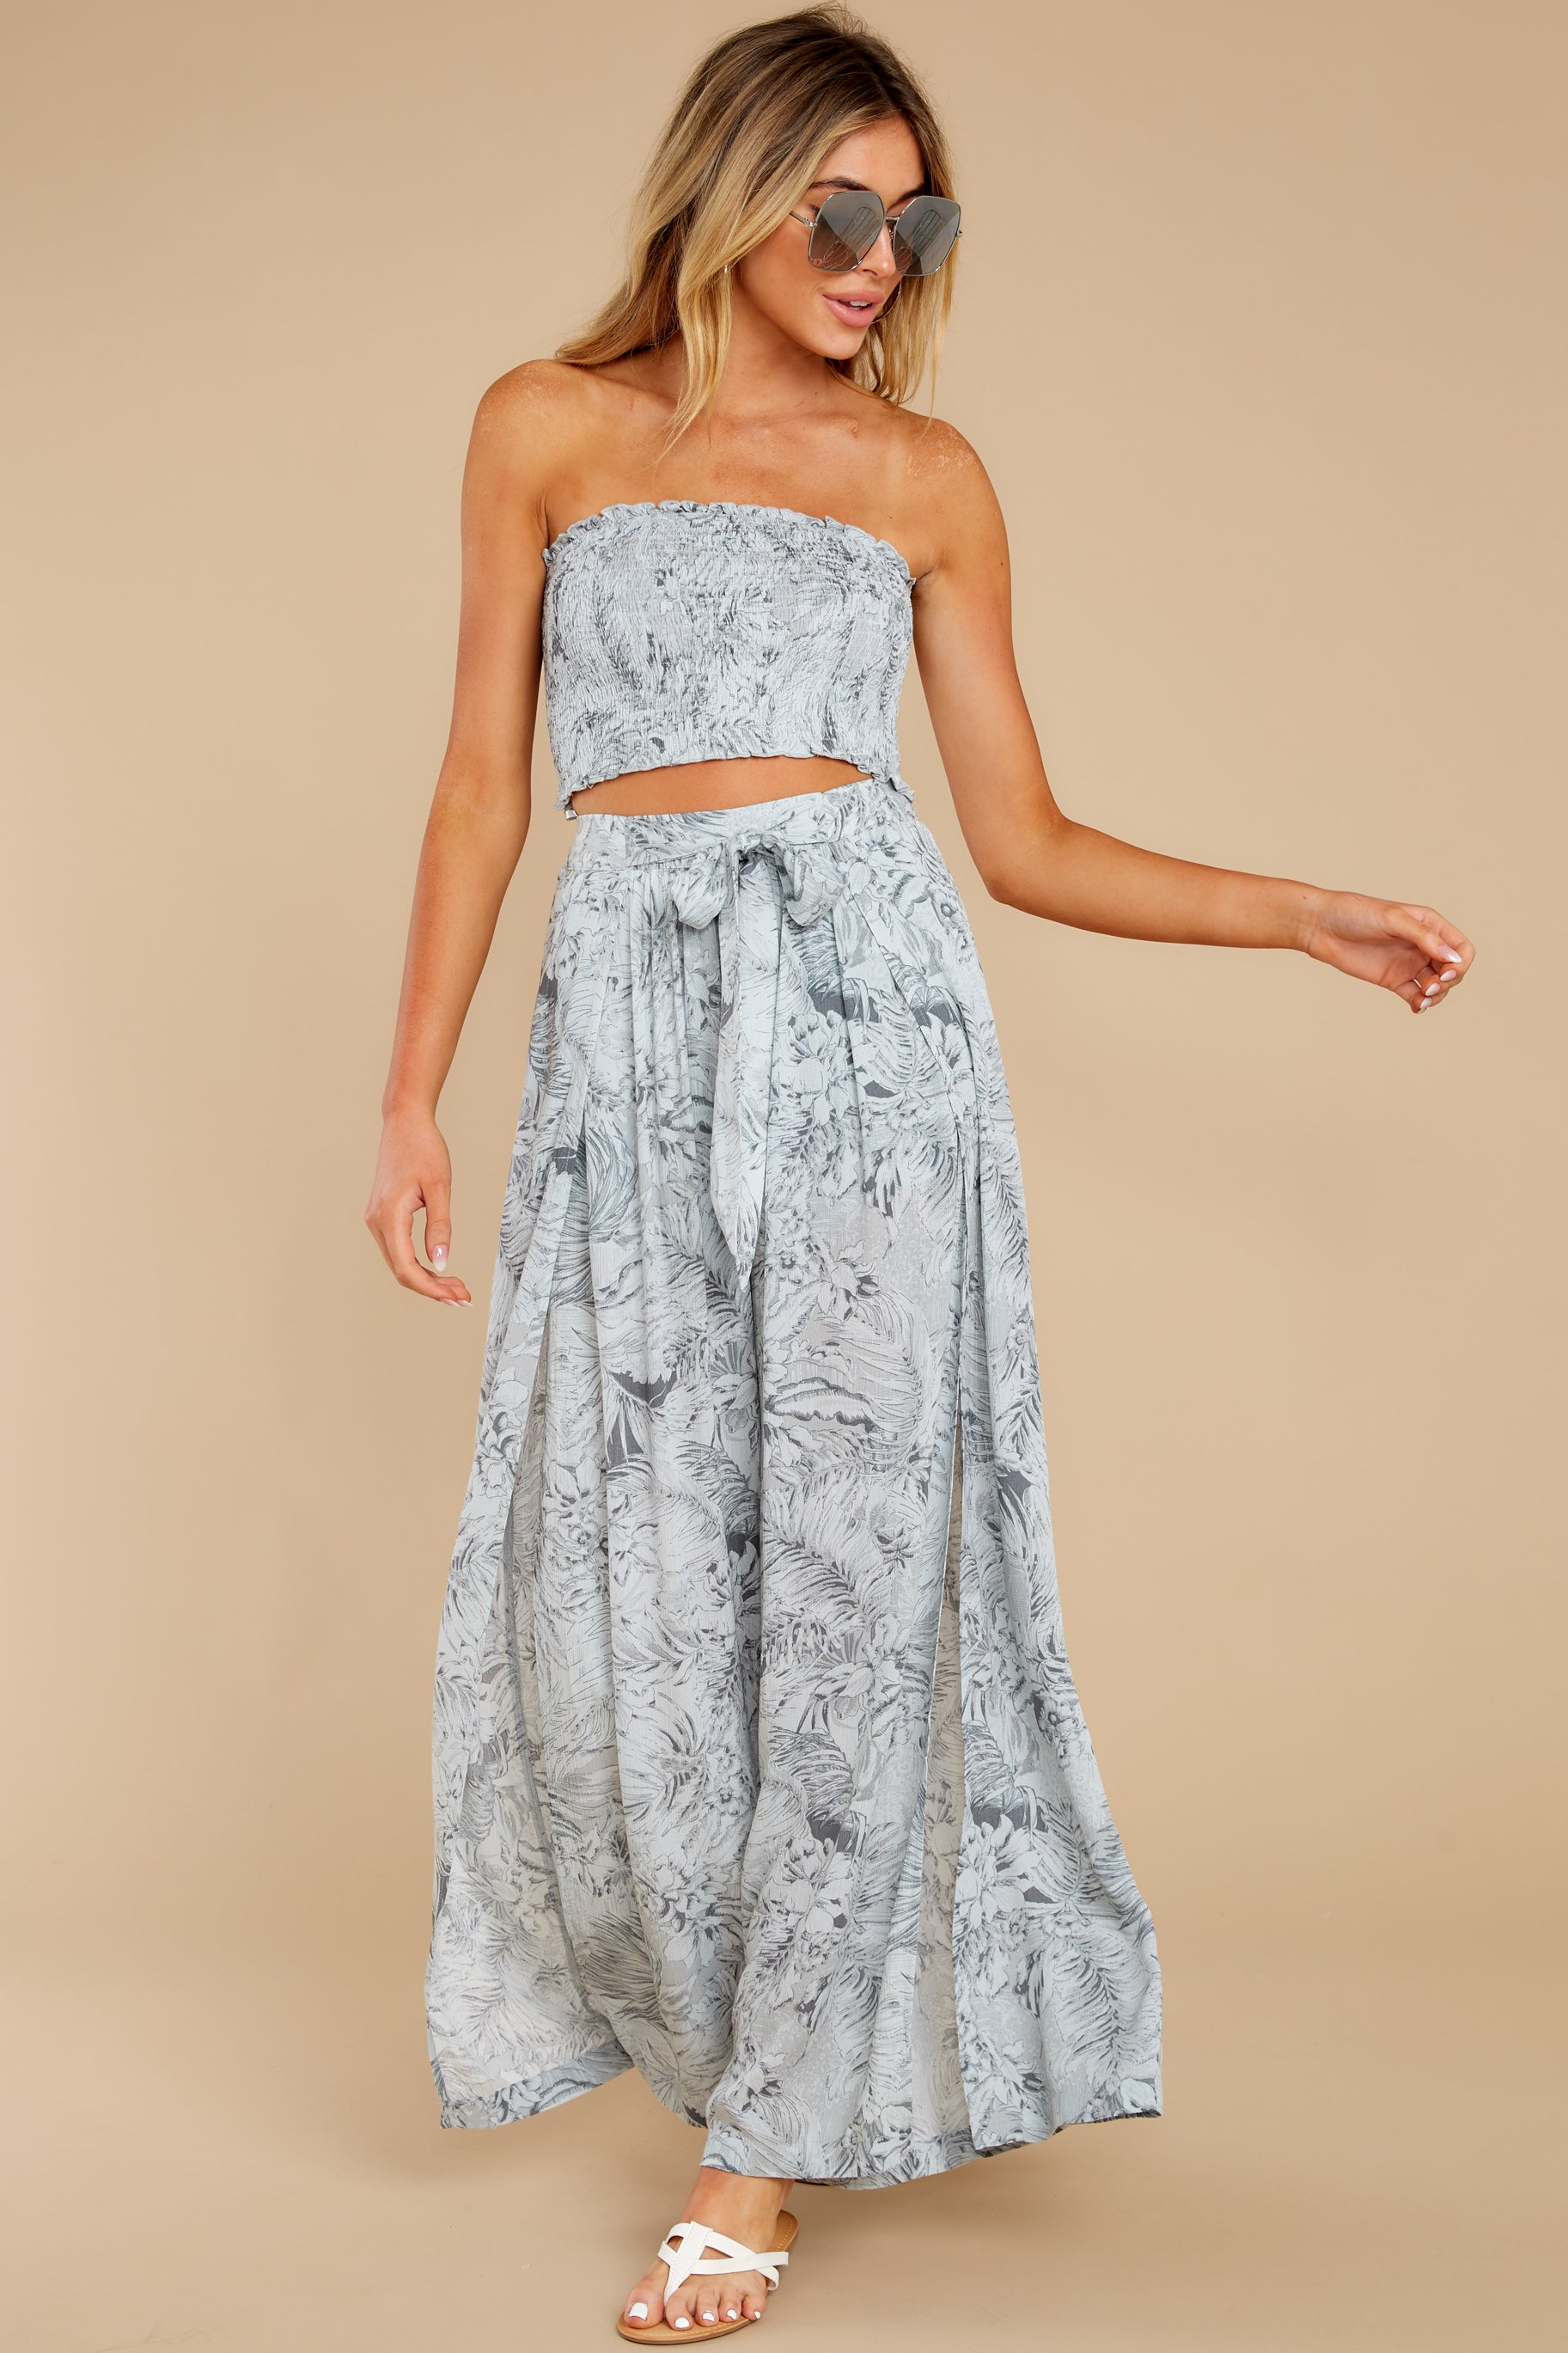 2 Under The Palms Dove Grey Tropical Print Two Piece Set at reddress.com